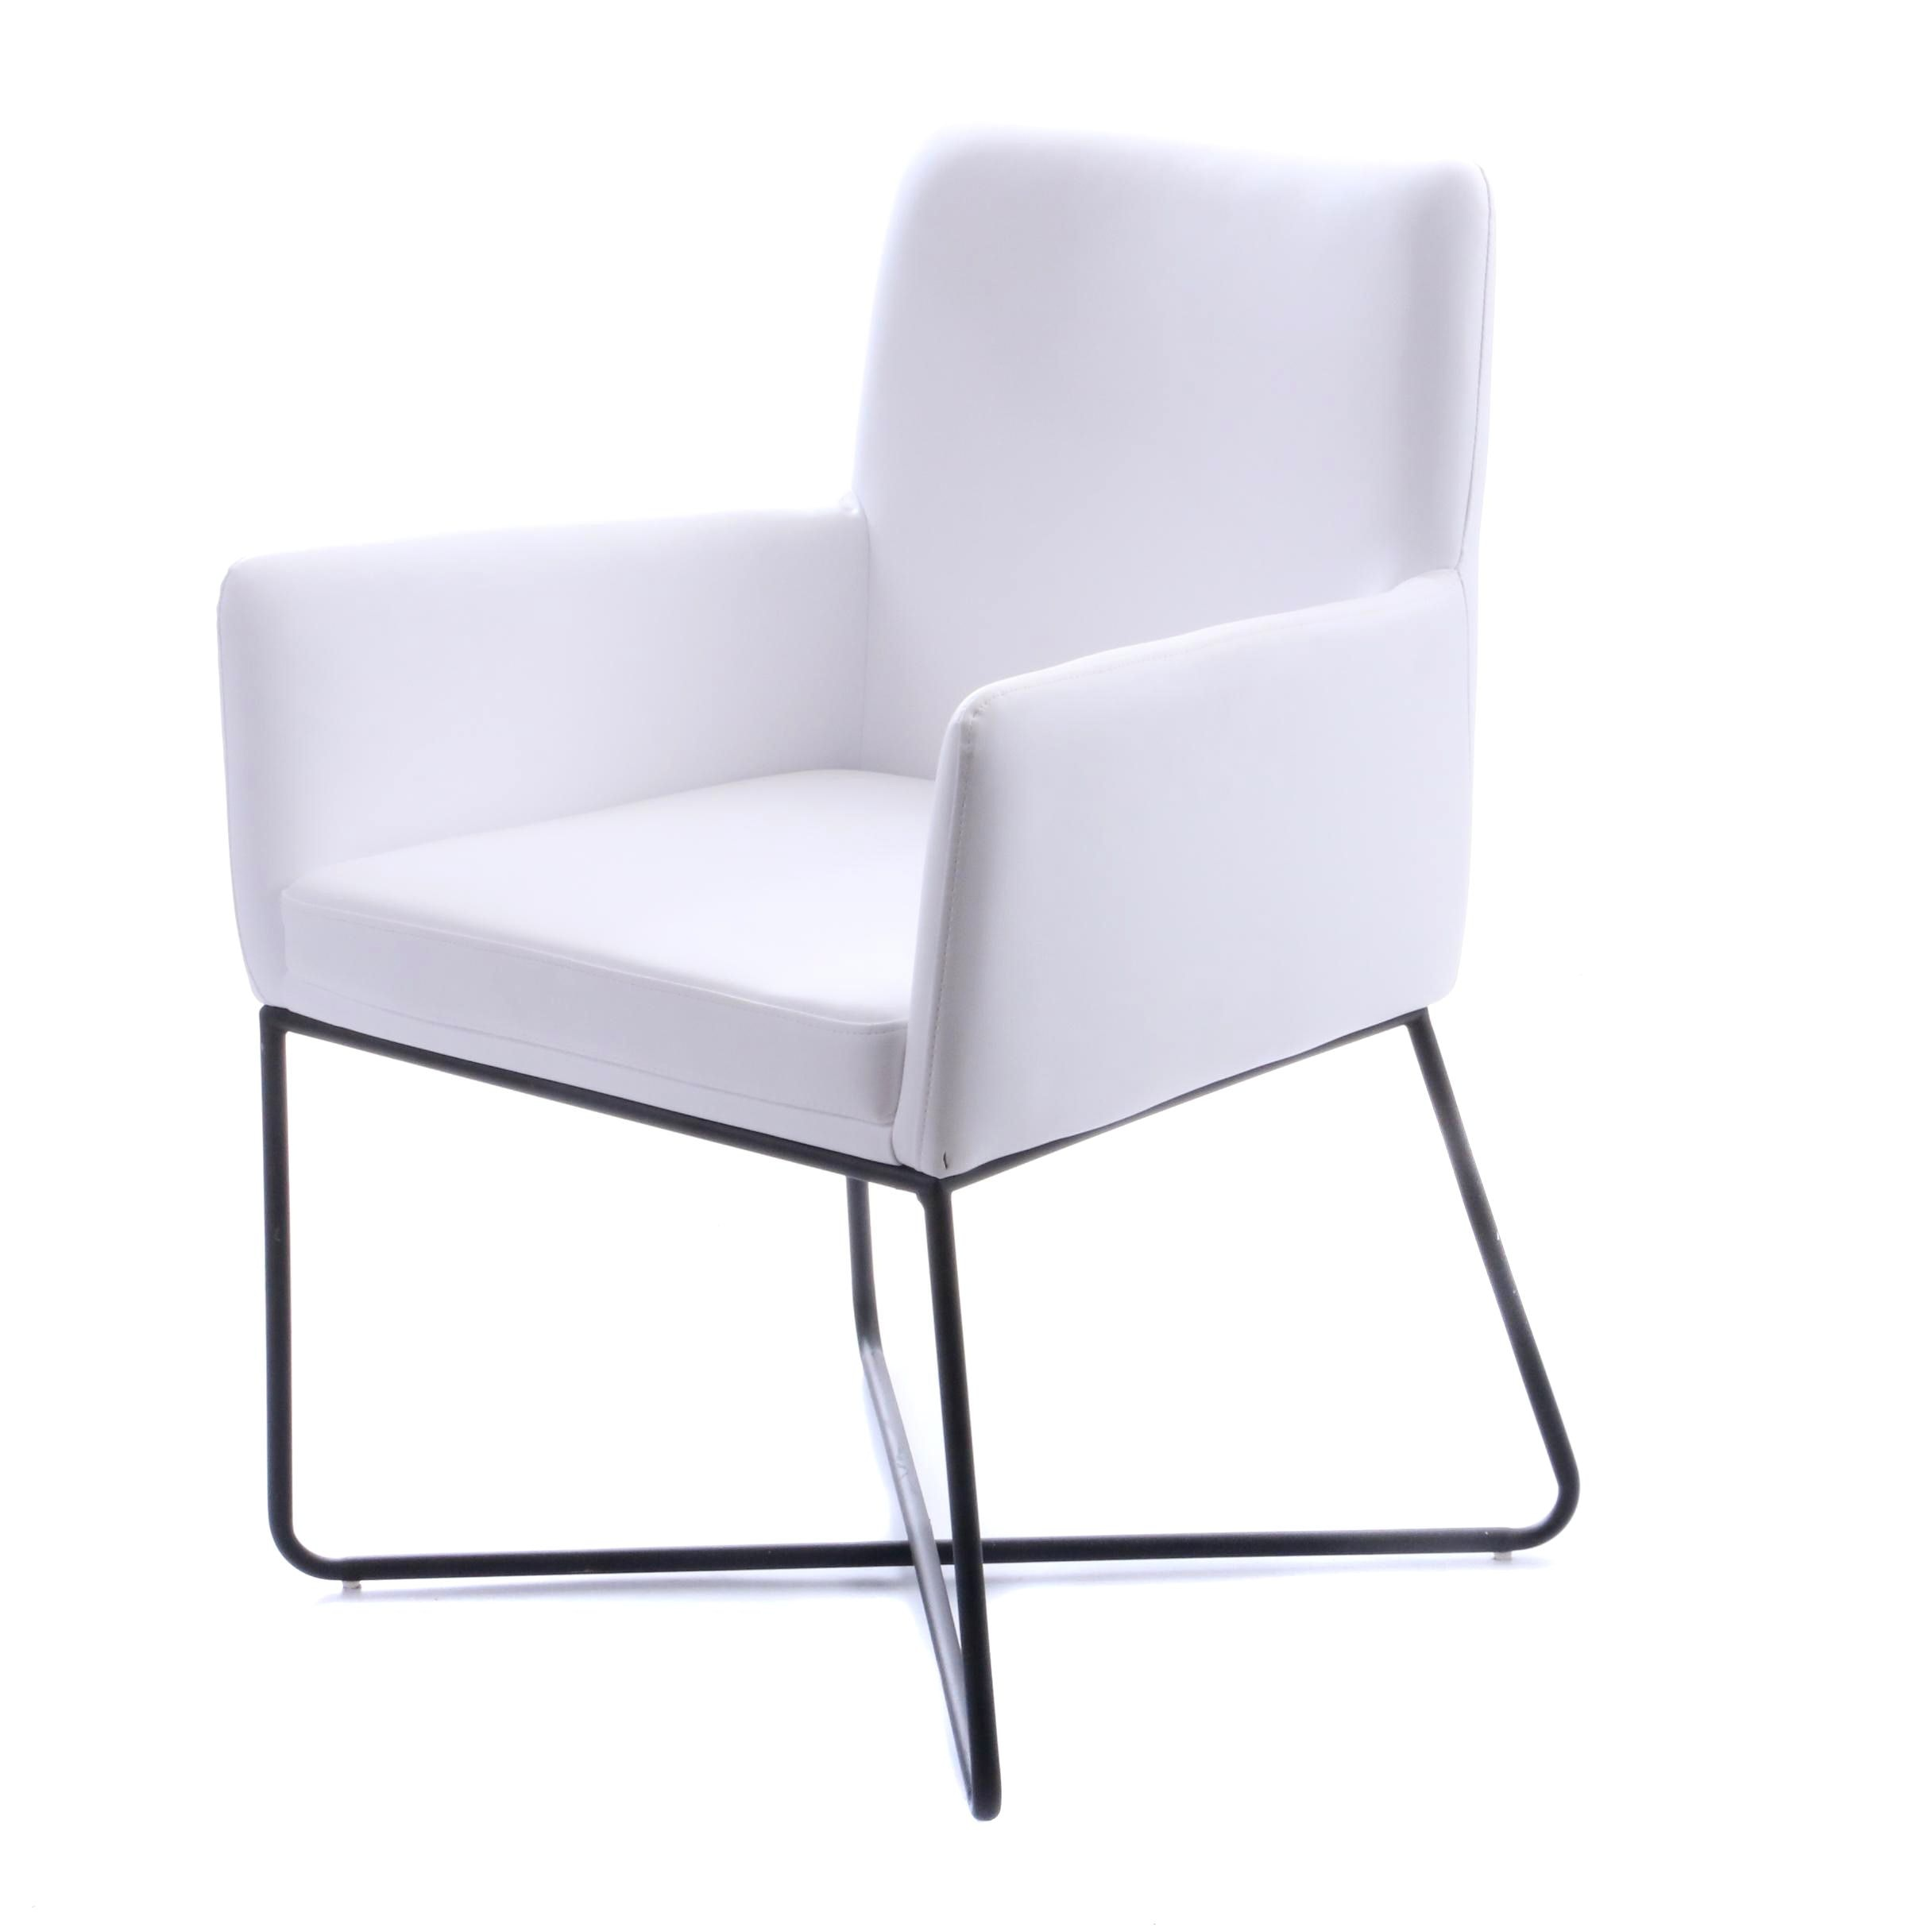 Zuo Modern Armchair in White